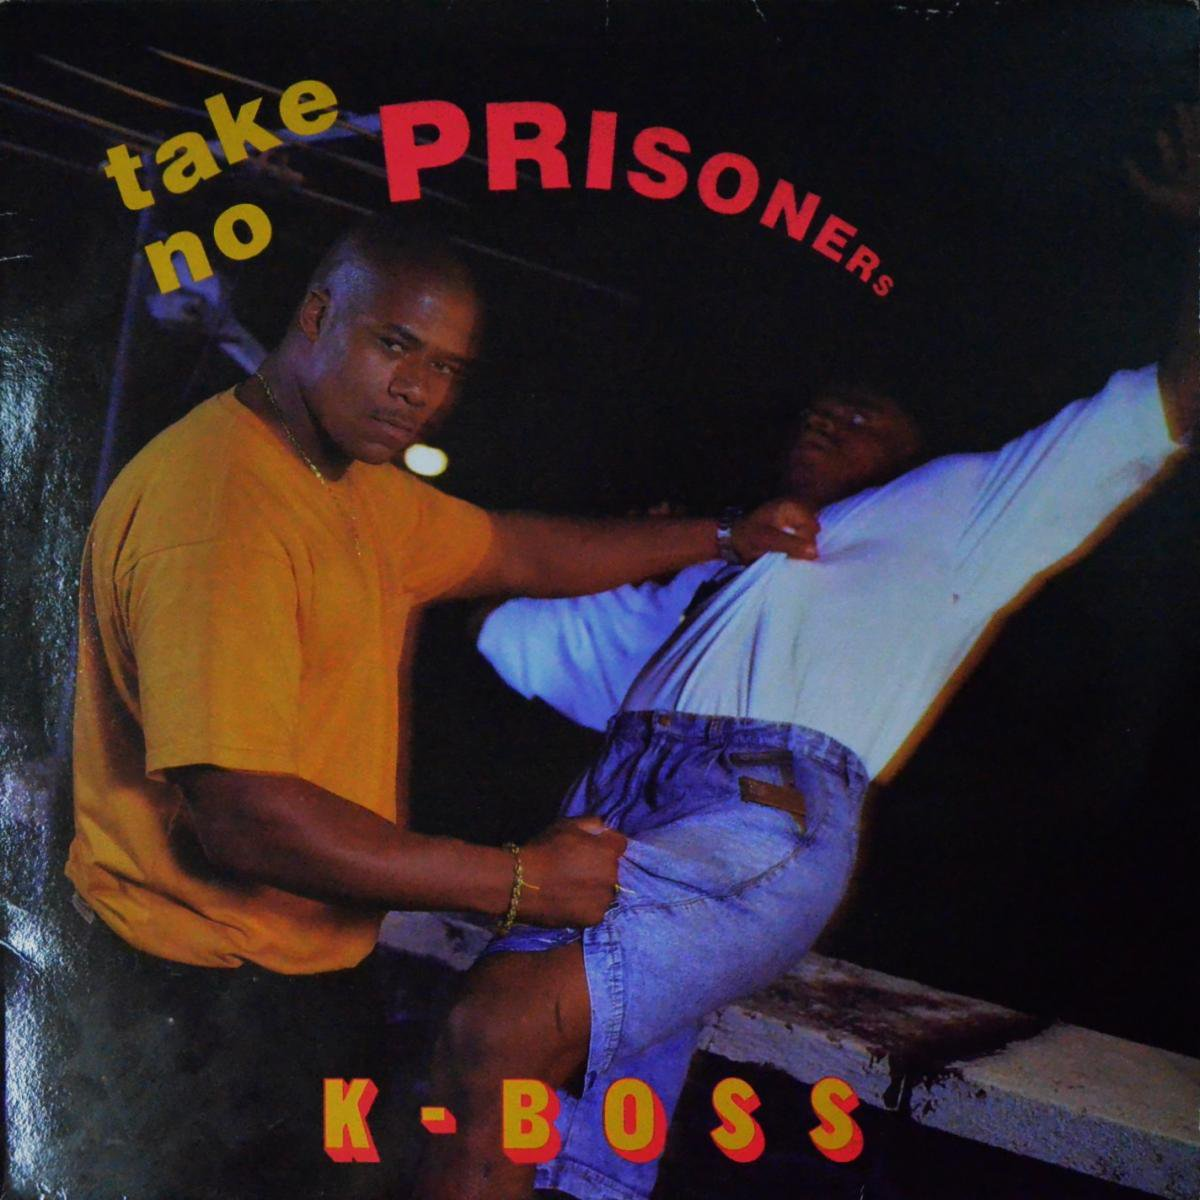 K-BOSS / TAKE NO PRISONERS / STRONG ISLAND (12